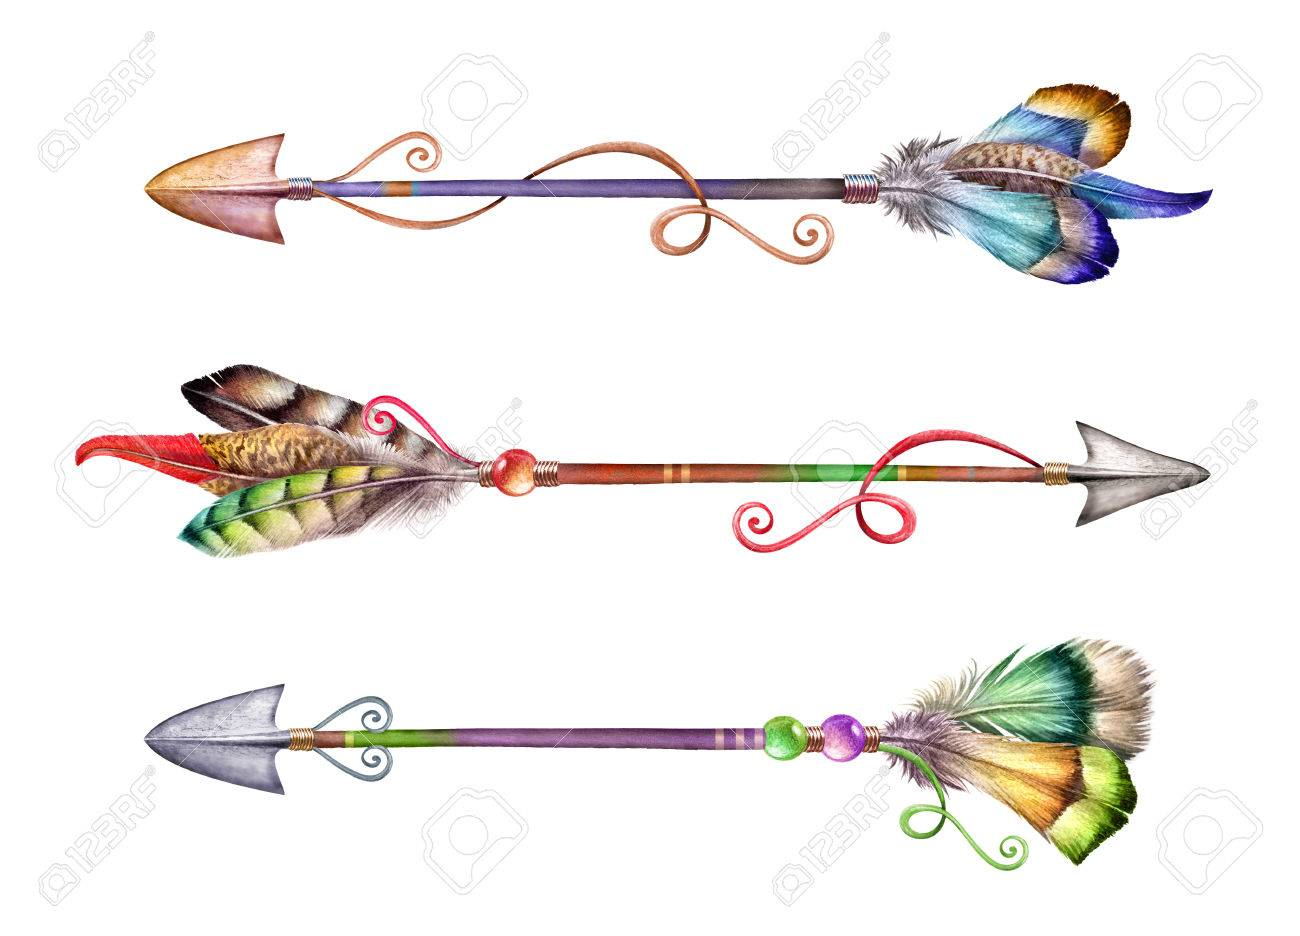 Bohemian Arrows with Feathers and Flowers Original Watercolor 5x7\u201d